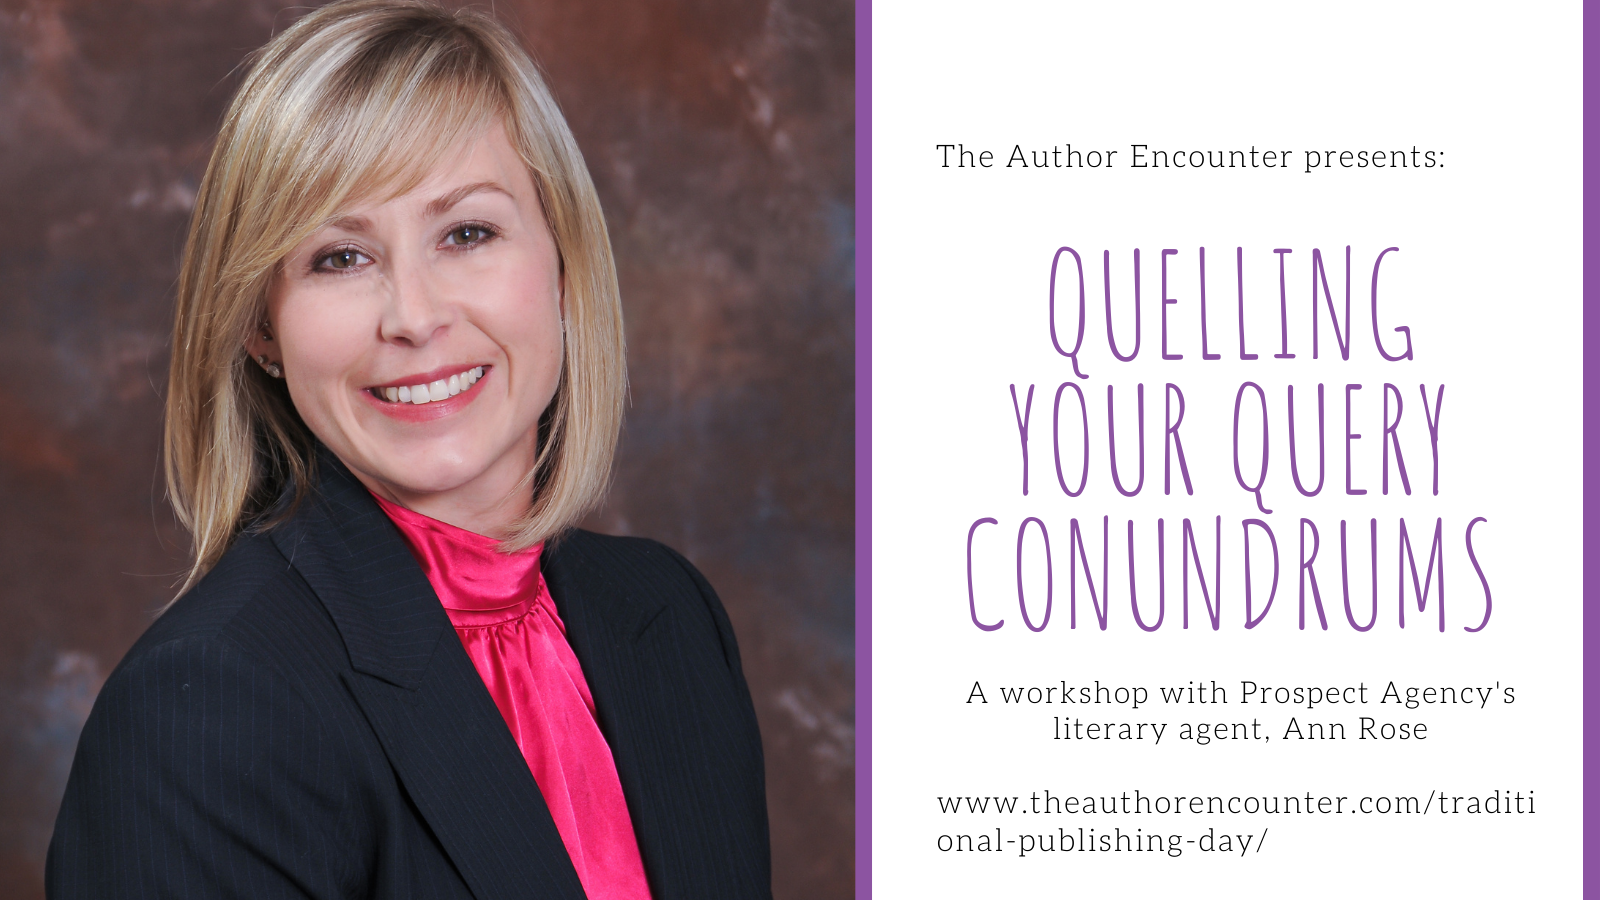 image for a query workshop with Ann Rose from the prospect agency